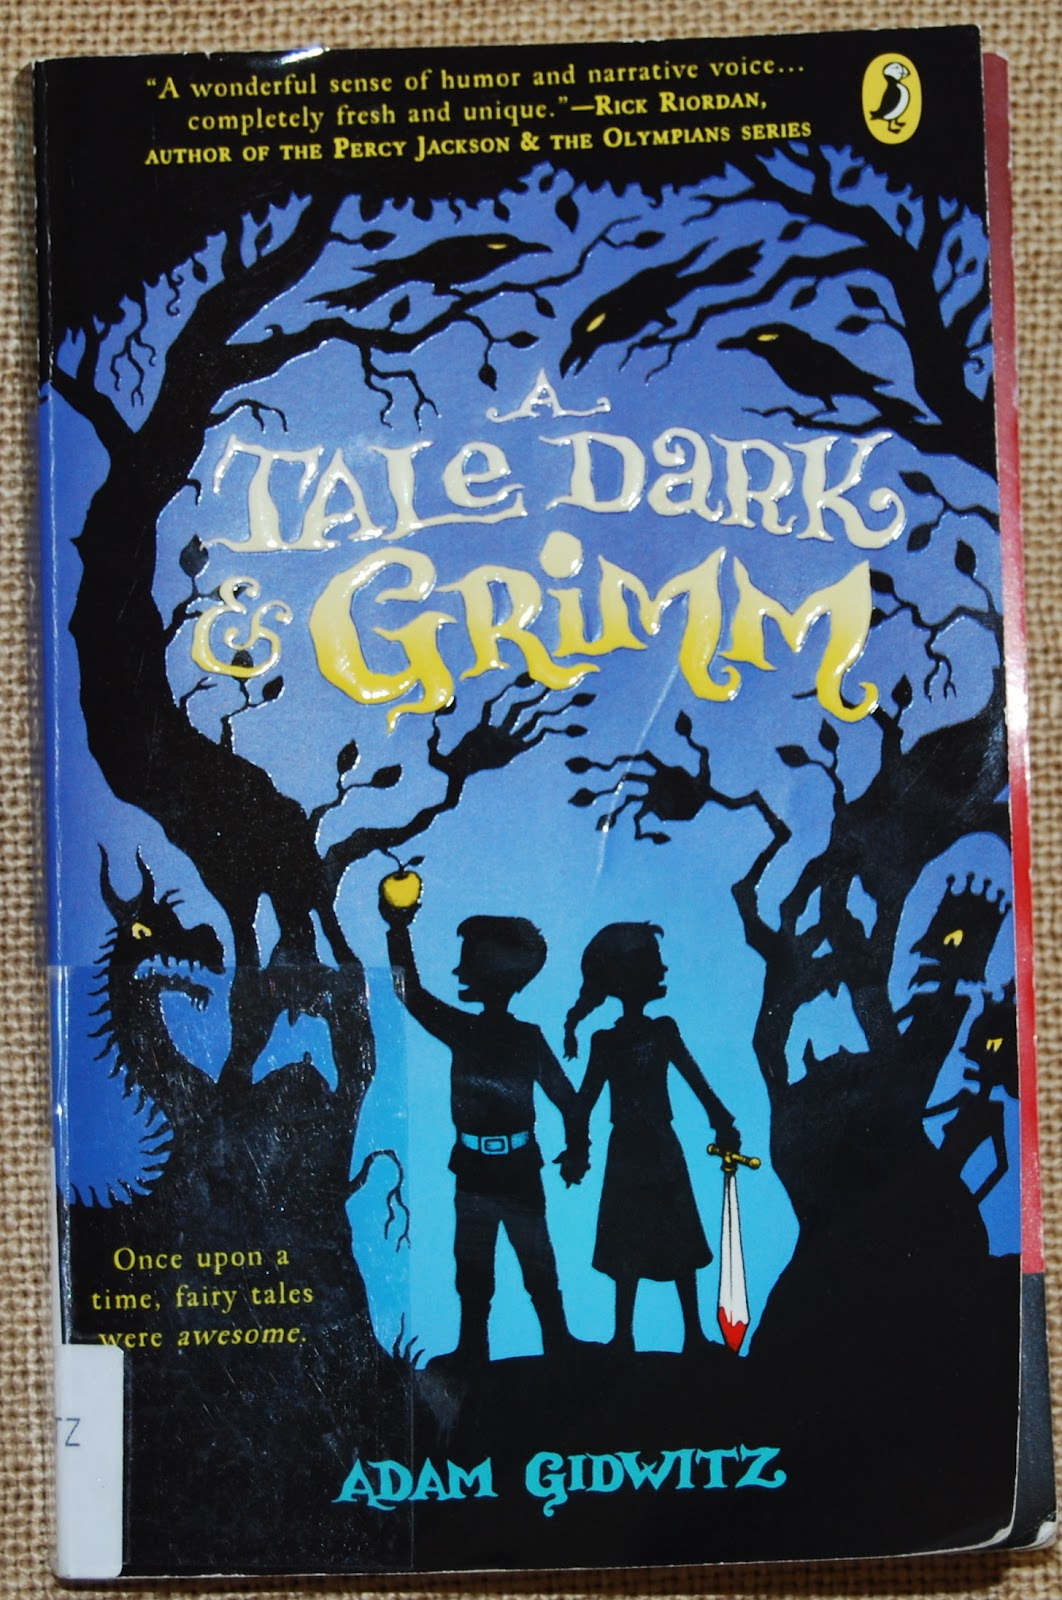 One Great Book Chapter Books Based On The Grimm Fairytales